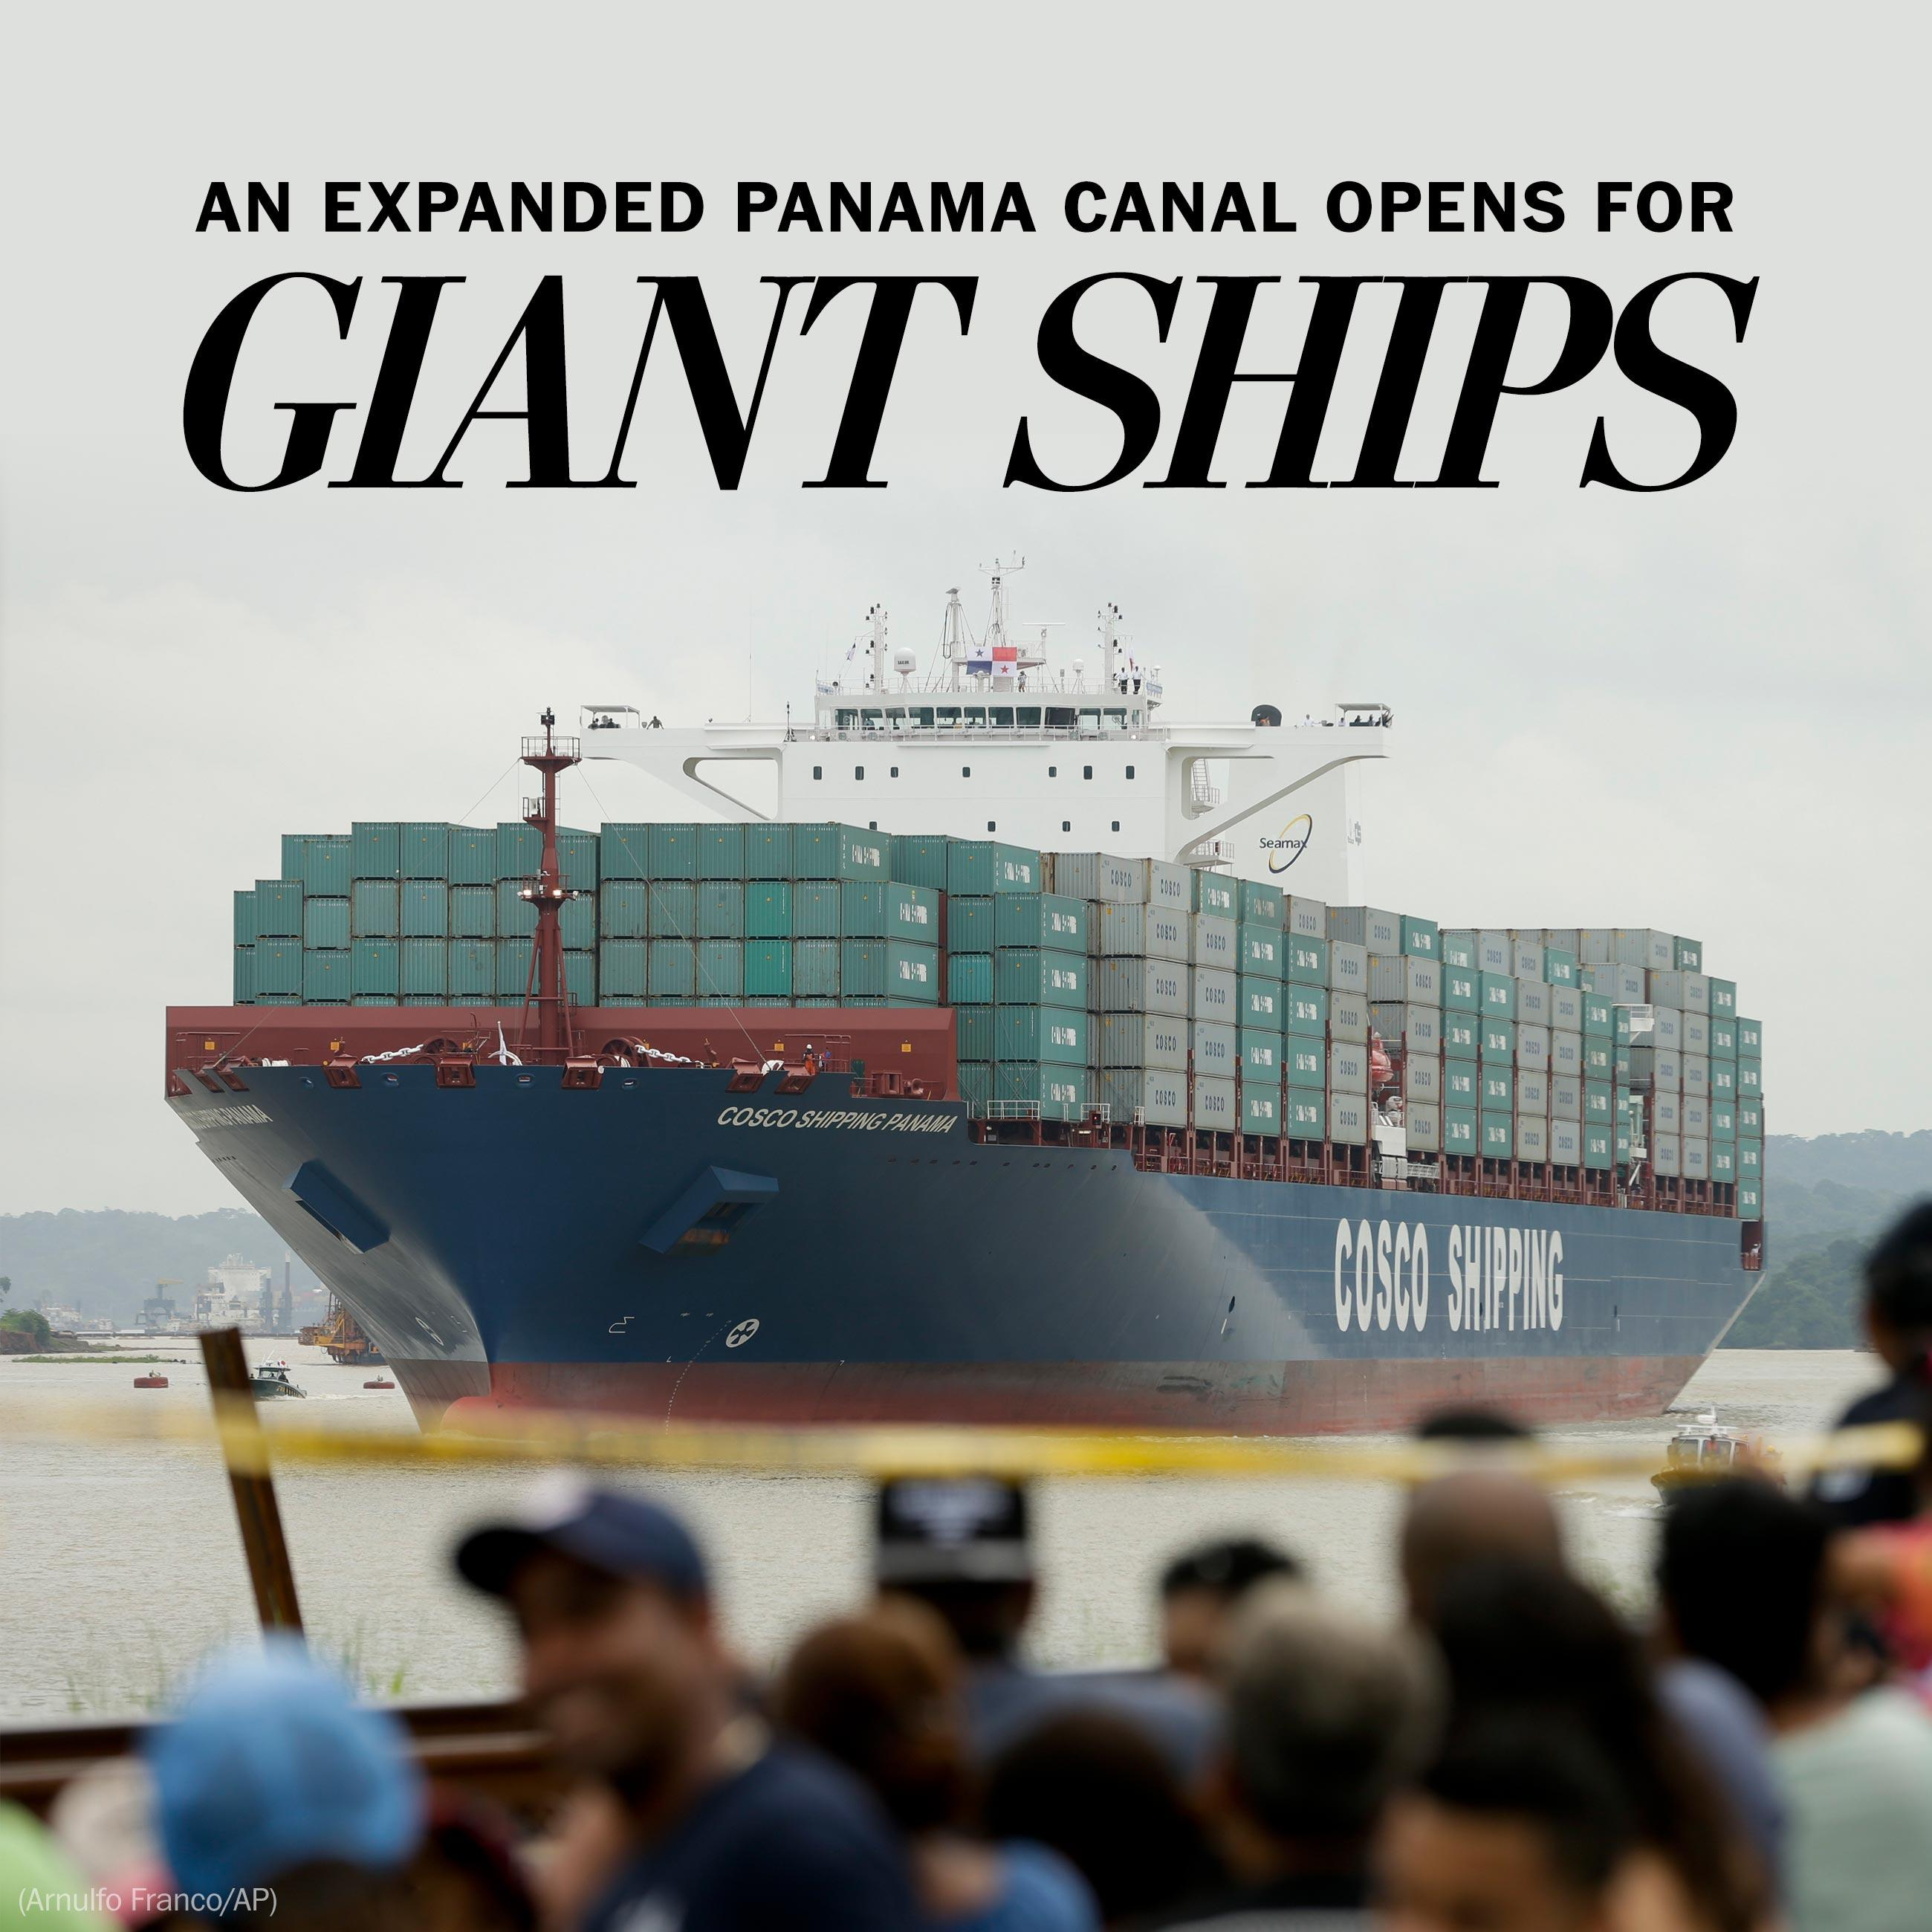 An expanded Panama Canal opens for giant ships